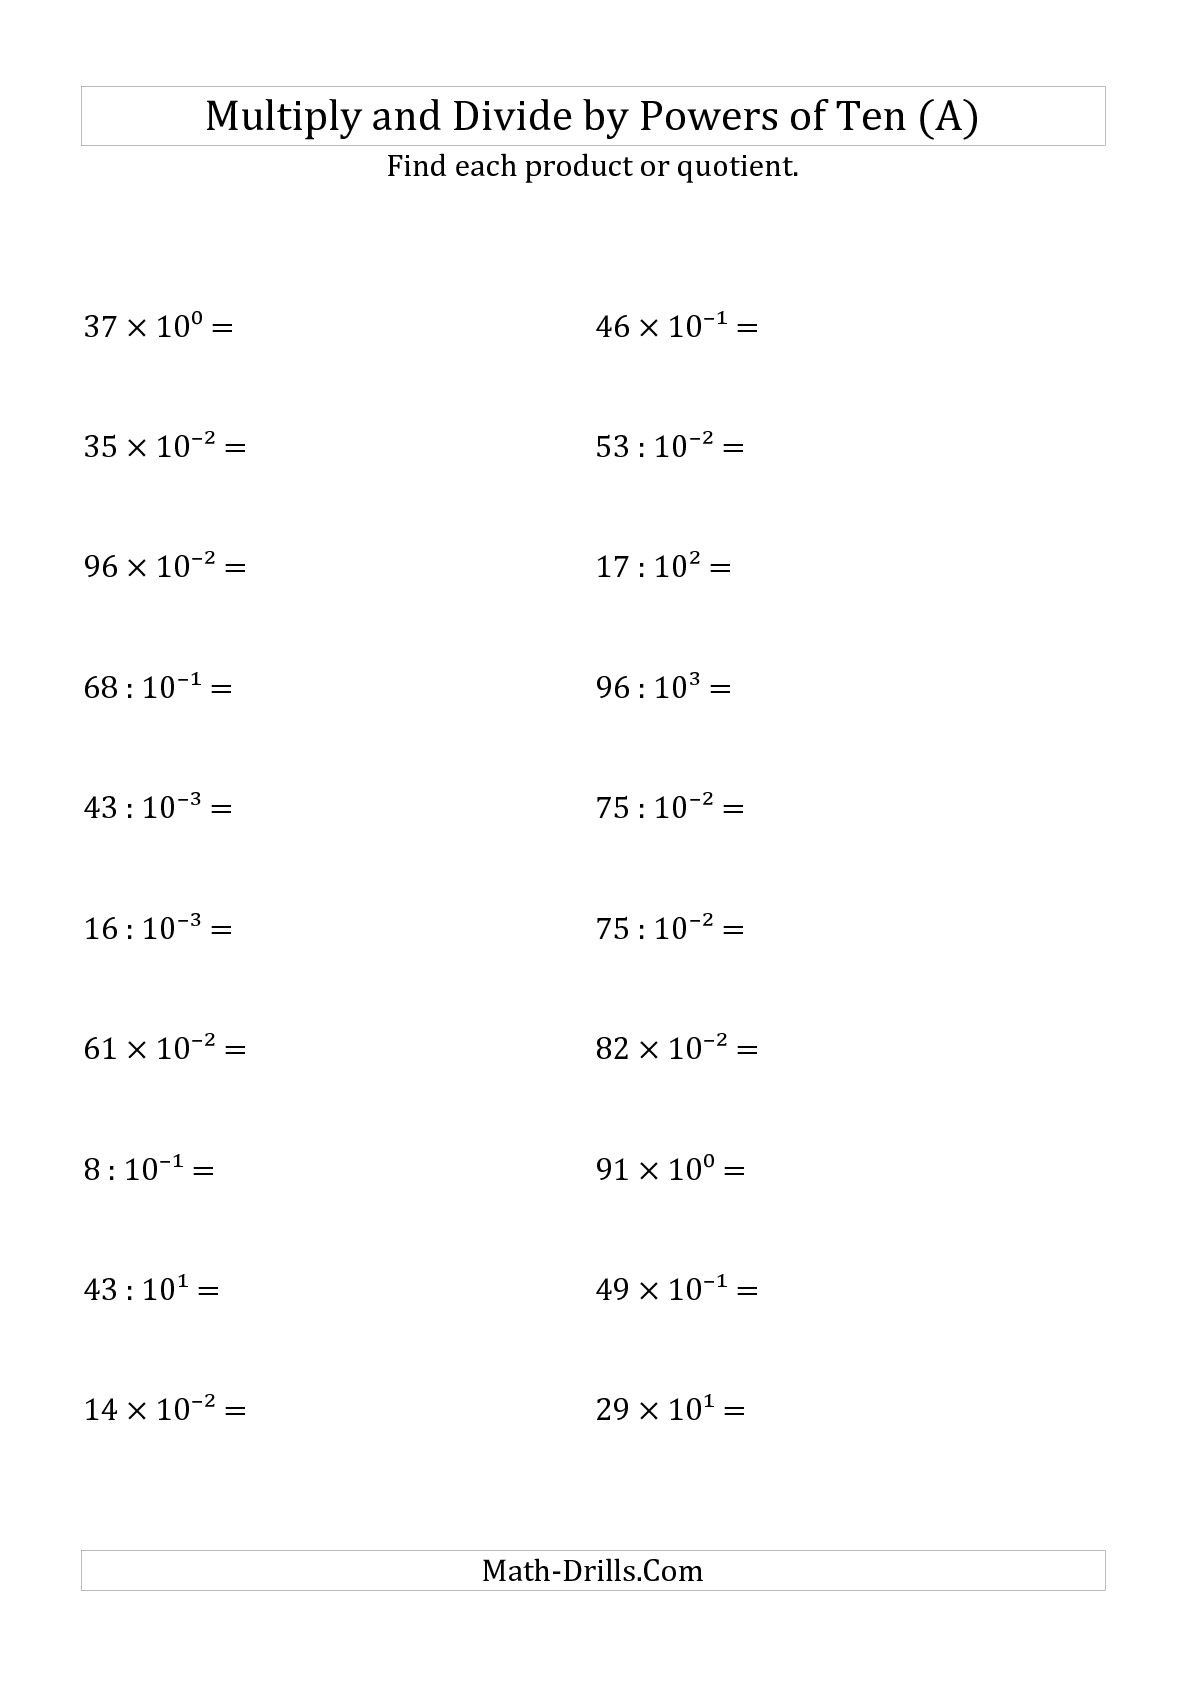 Algebra 2 Exponent Practice Worksheet Answers Awesome Division Property Exponents Worksheet Multiplicationes Answers